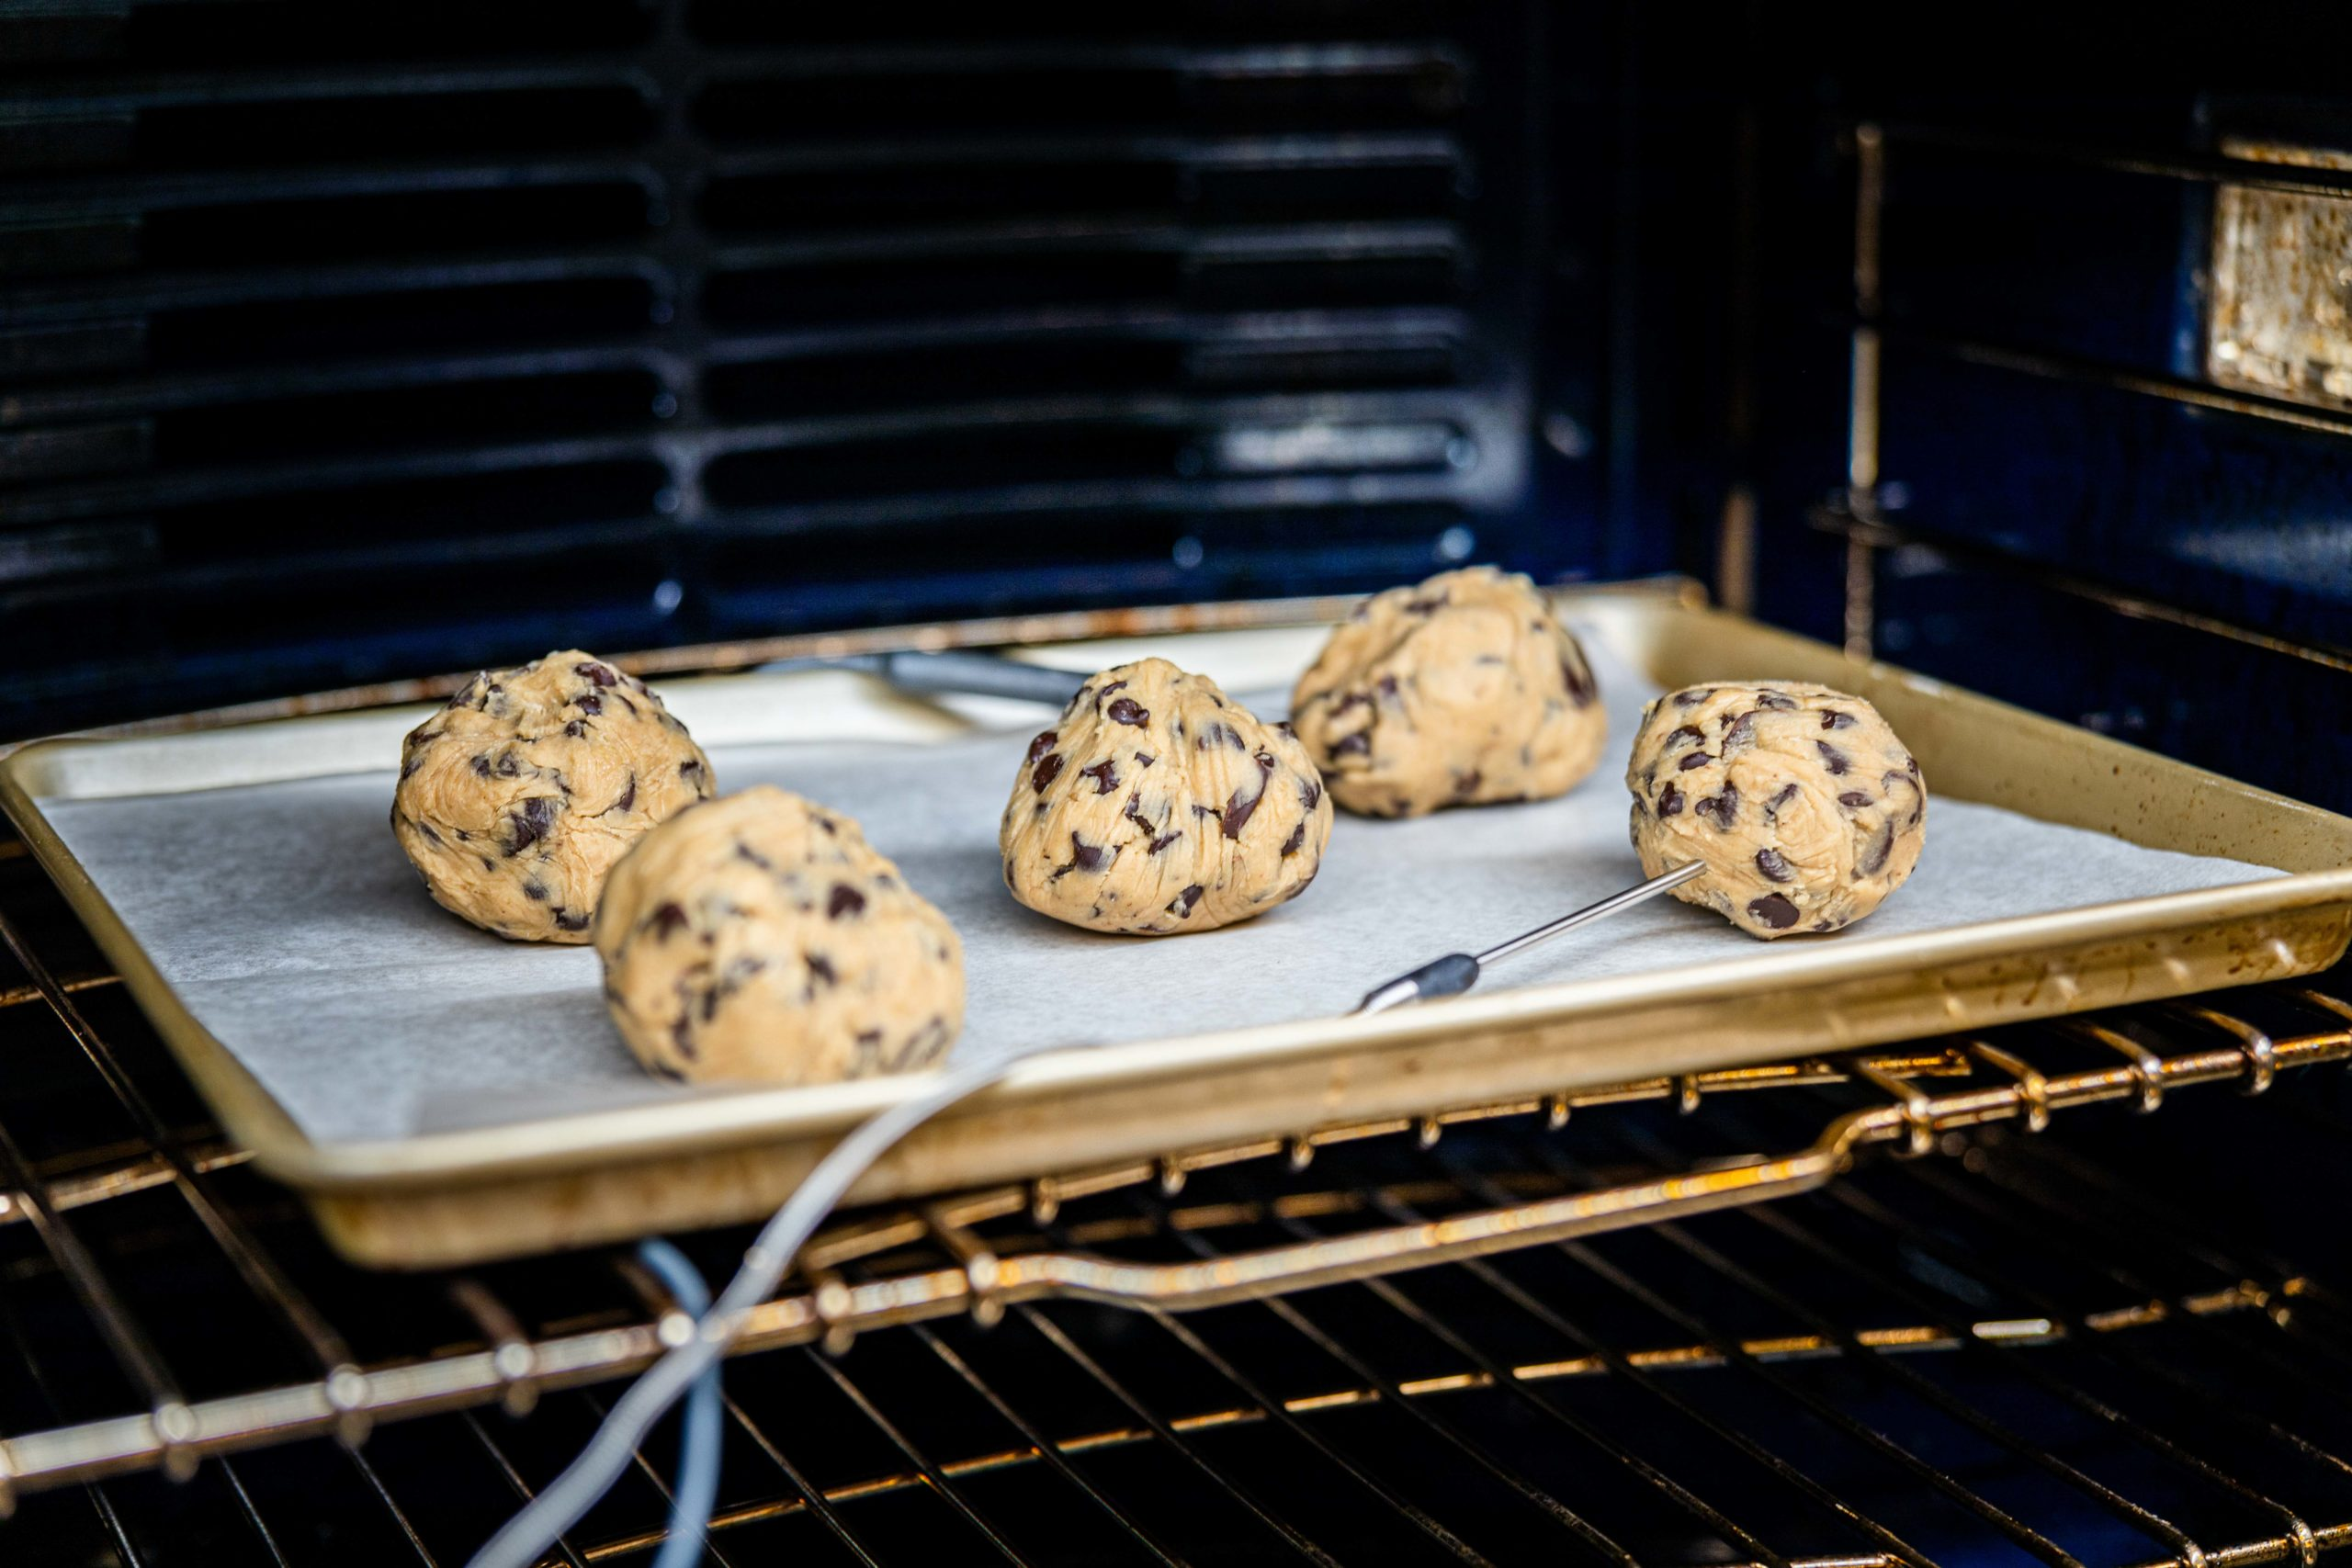 The cookies in the oven, probed with a thermometer probe